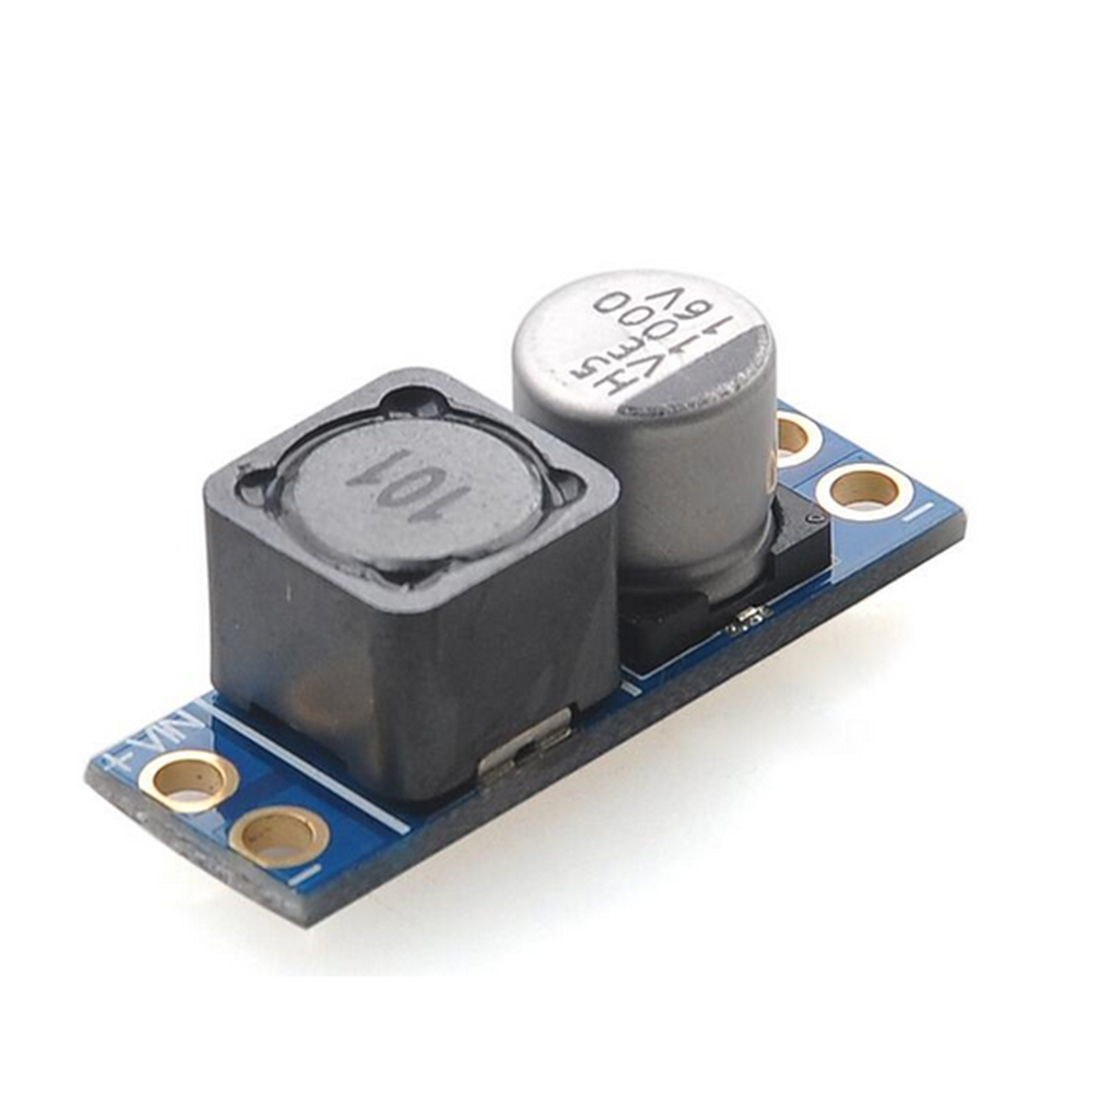 RTF LC-FILTER (2AMP 2-4S) / L-C Power Filter-2A for Clear Tmage Transmission FPV Ripple Interference Video Signal Filtering